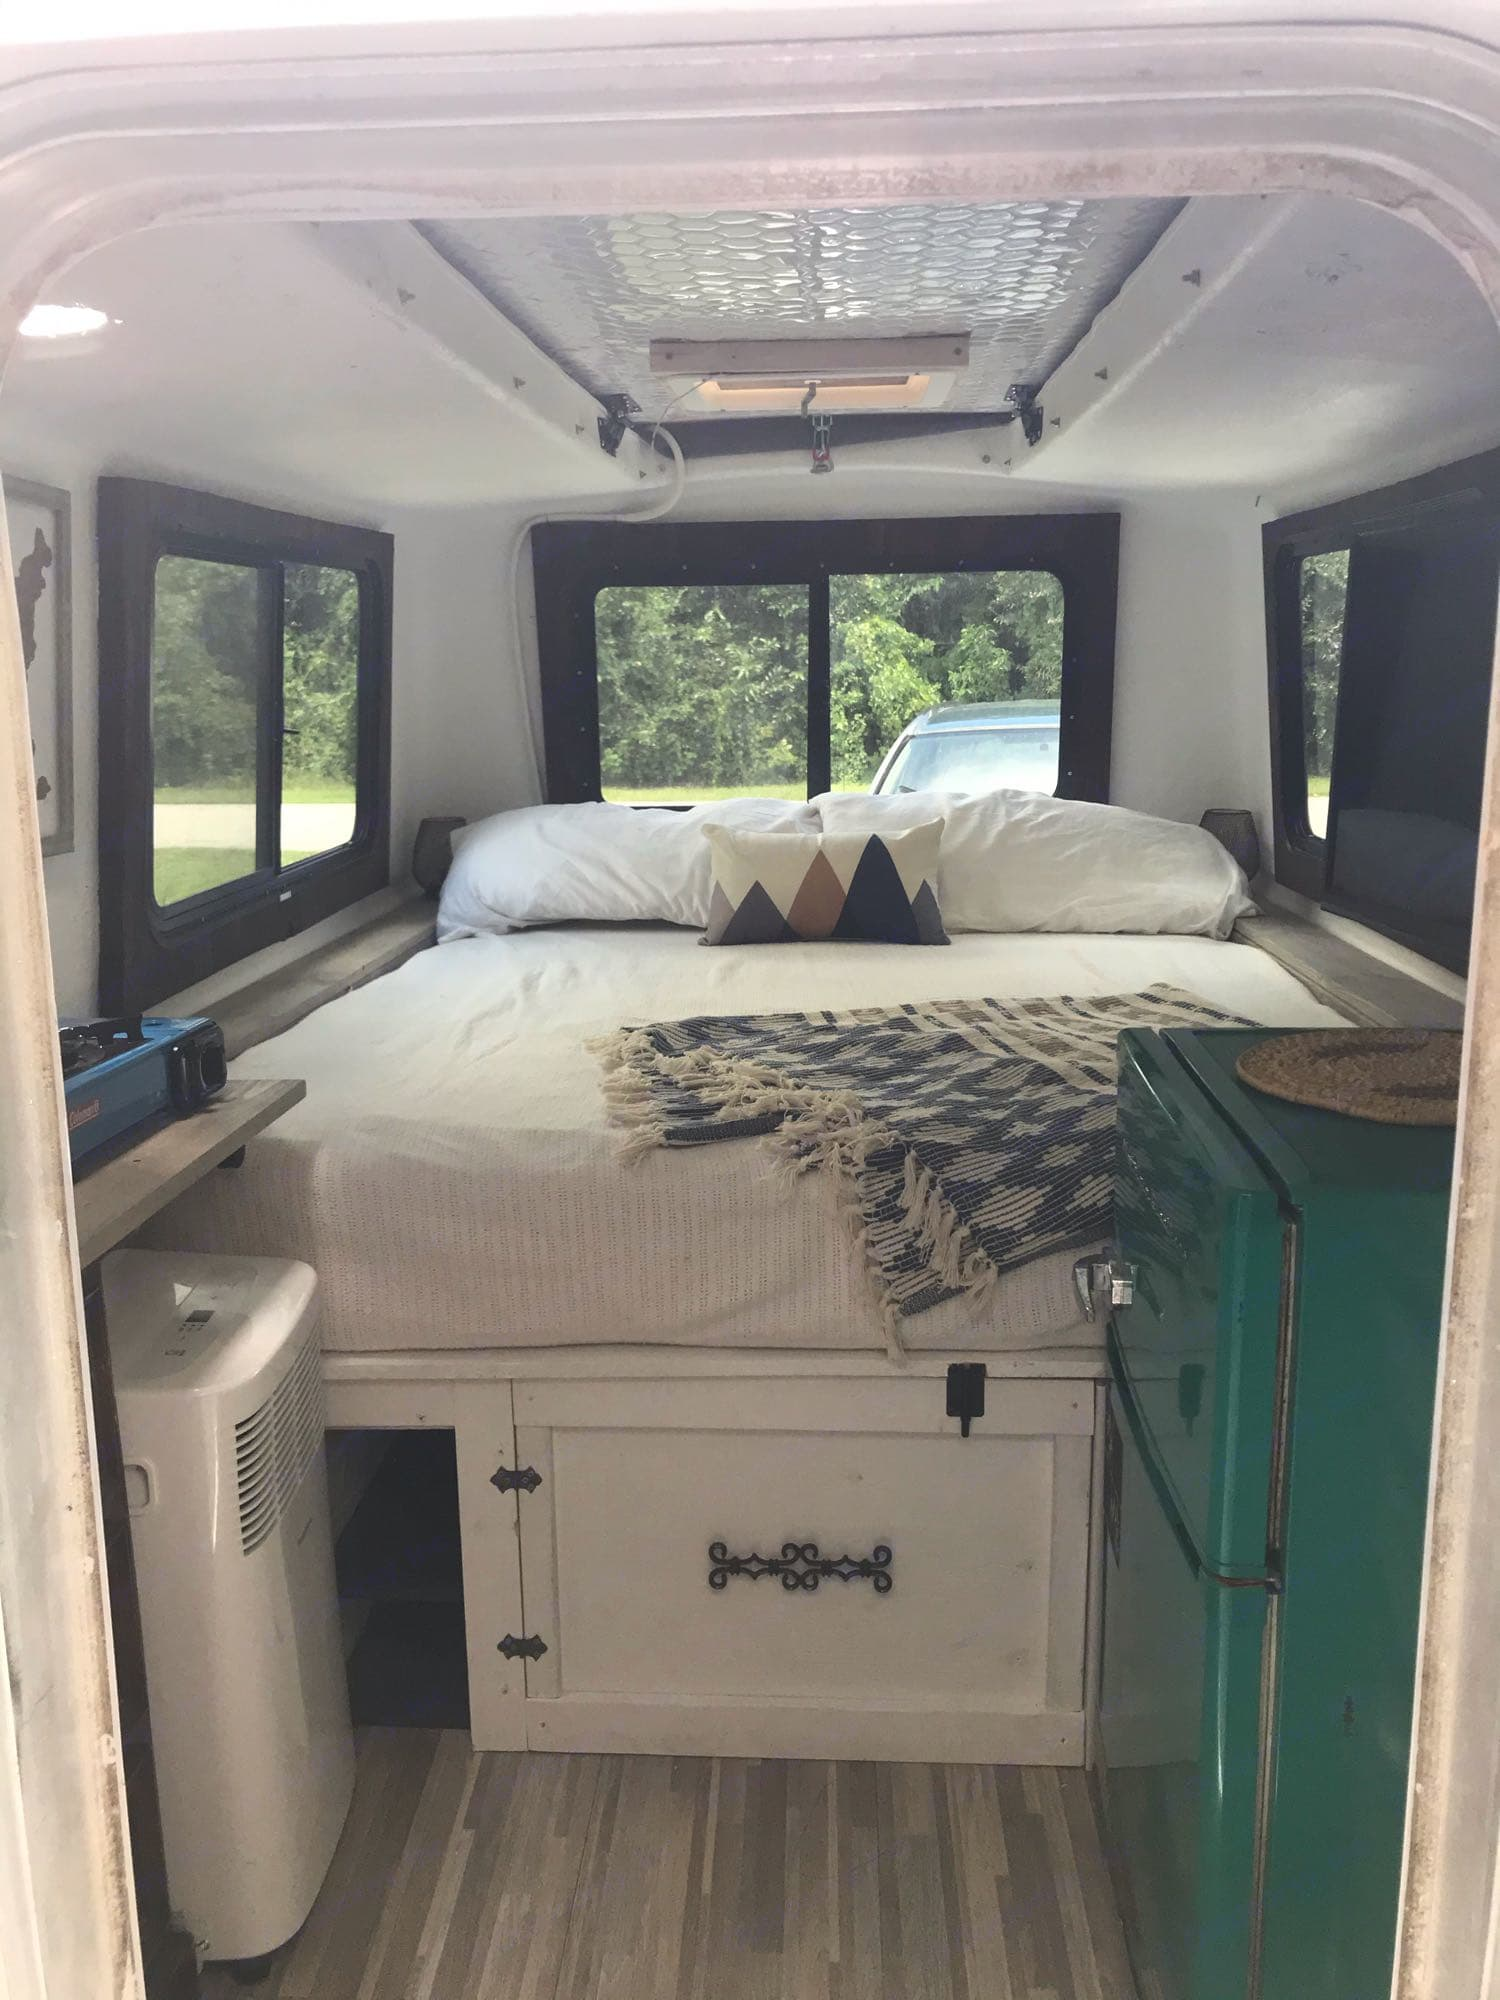 Queen bed- side cubby charging stations, under bed storage, mini fridge, flat screen, ac unit, Coleman butane stove. Hunter Compact Junior 1971